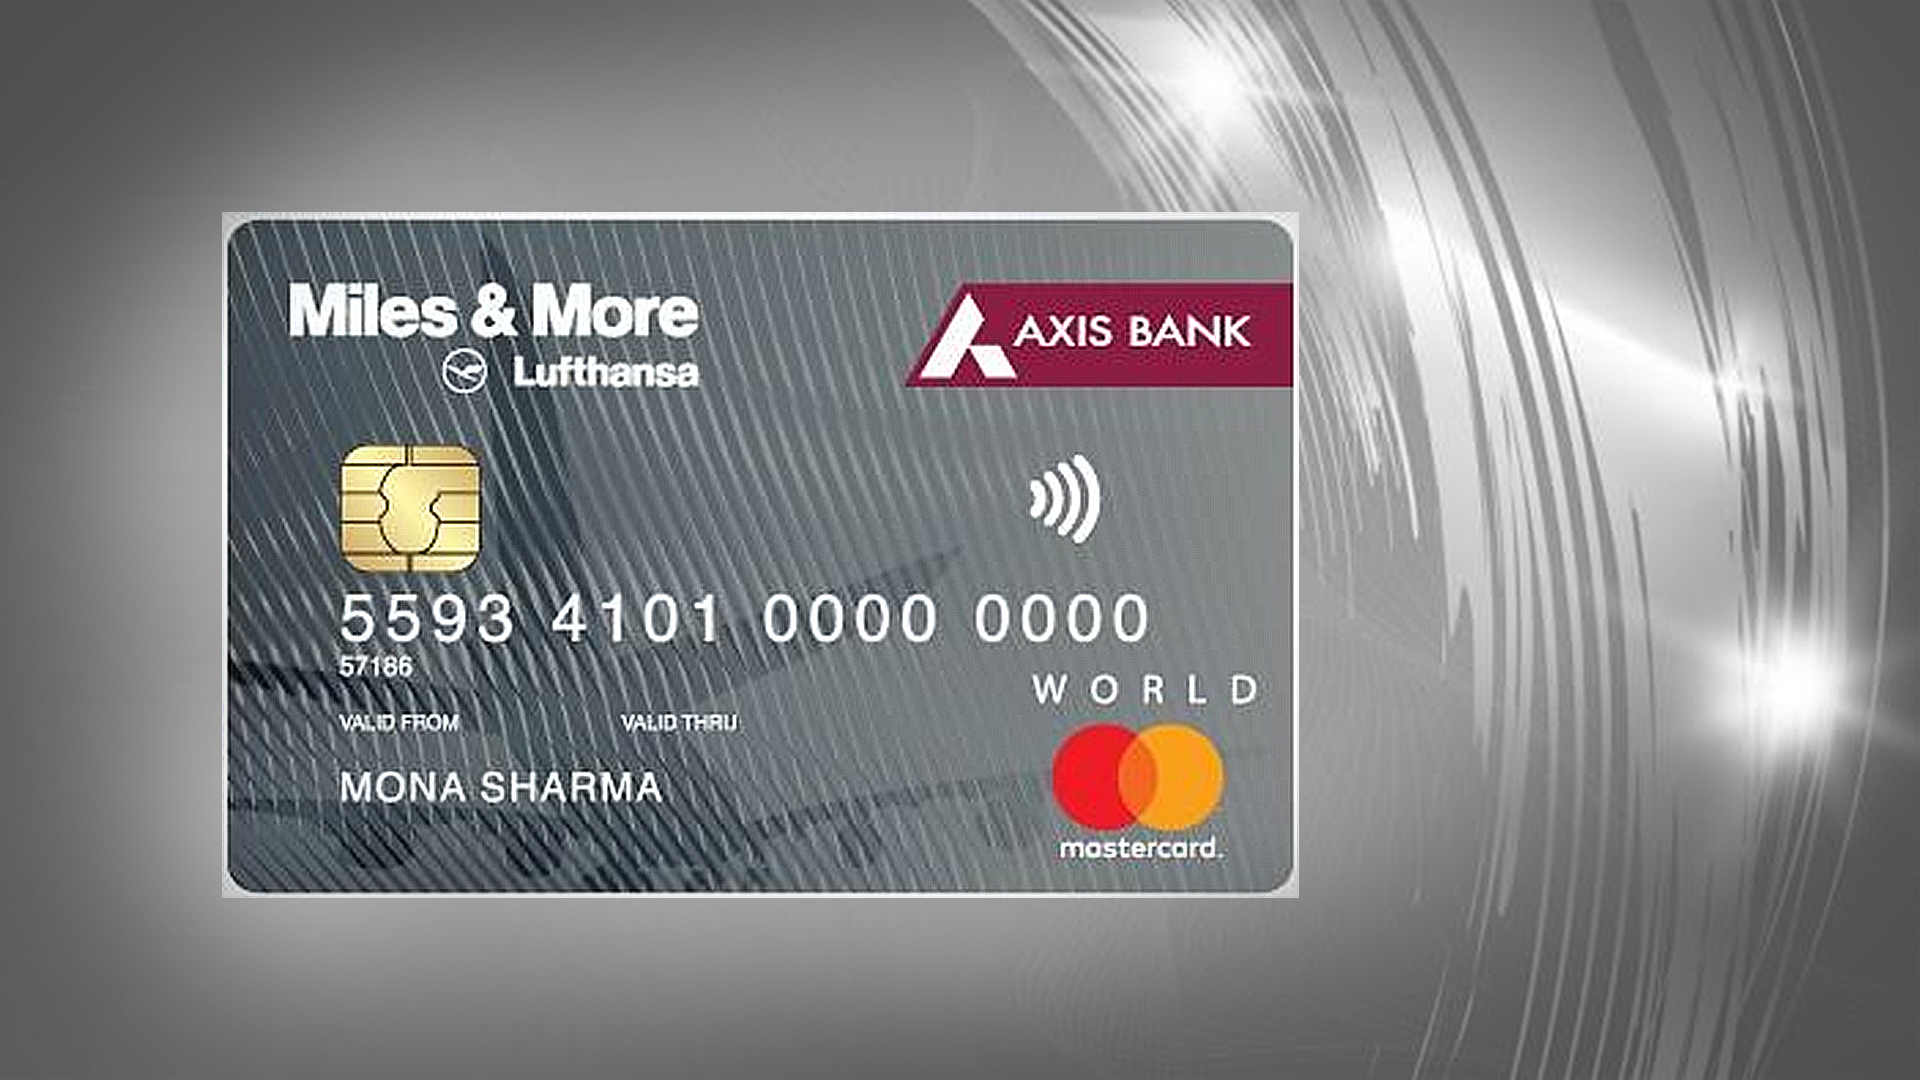 Axis Bank Miles & More World Credit Card